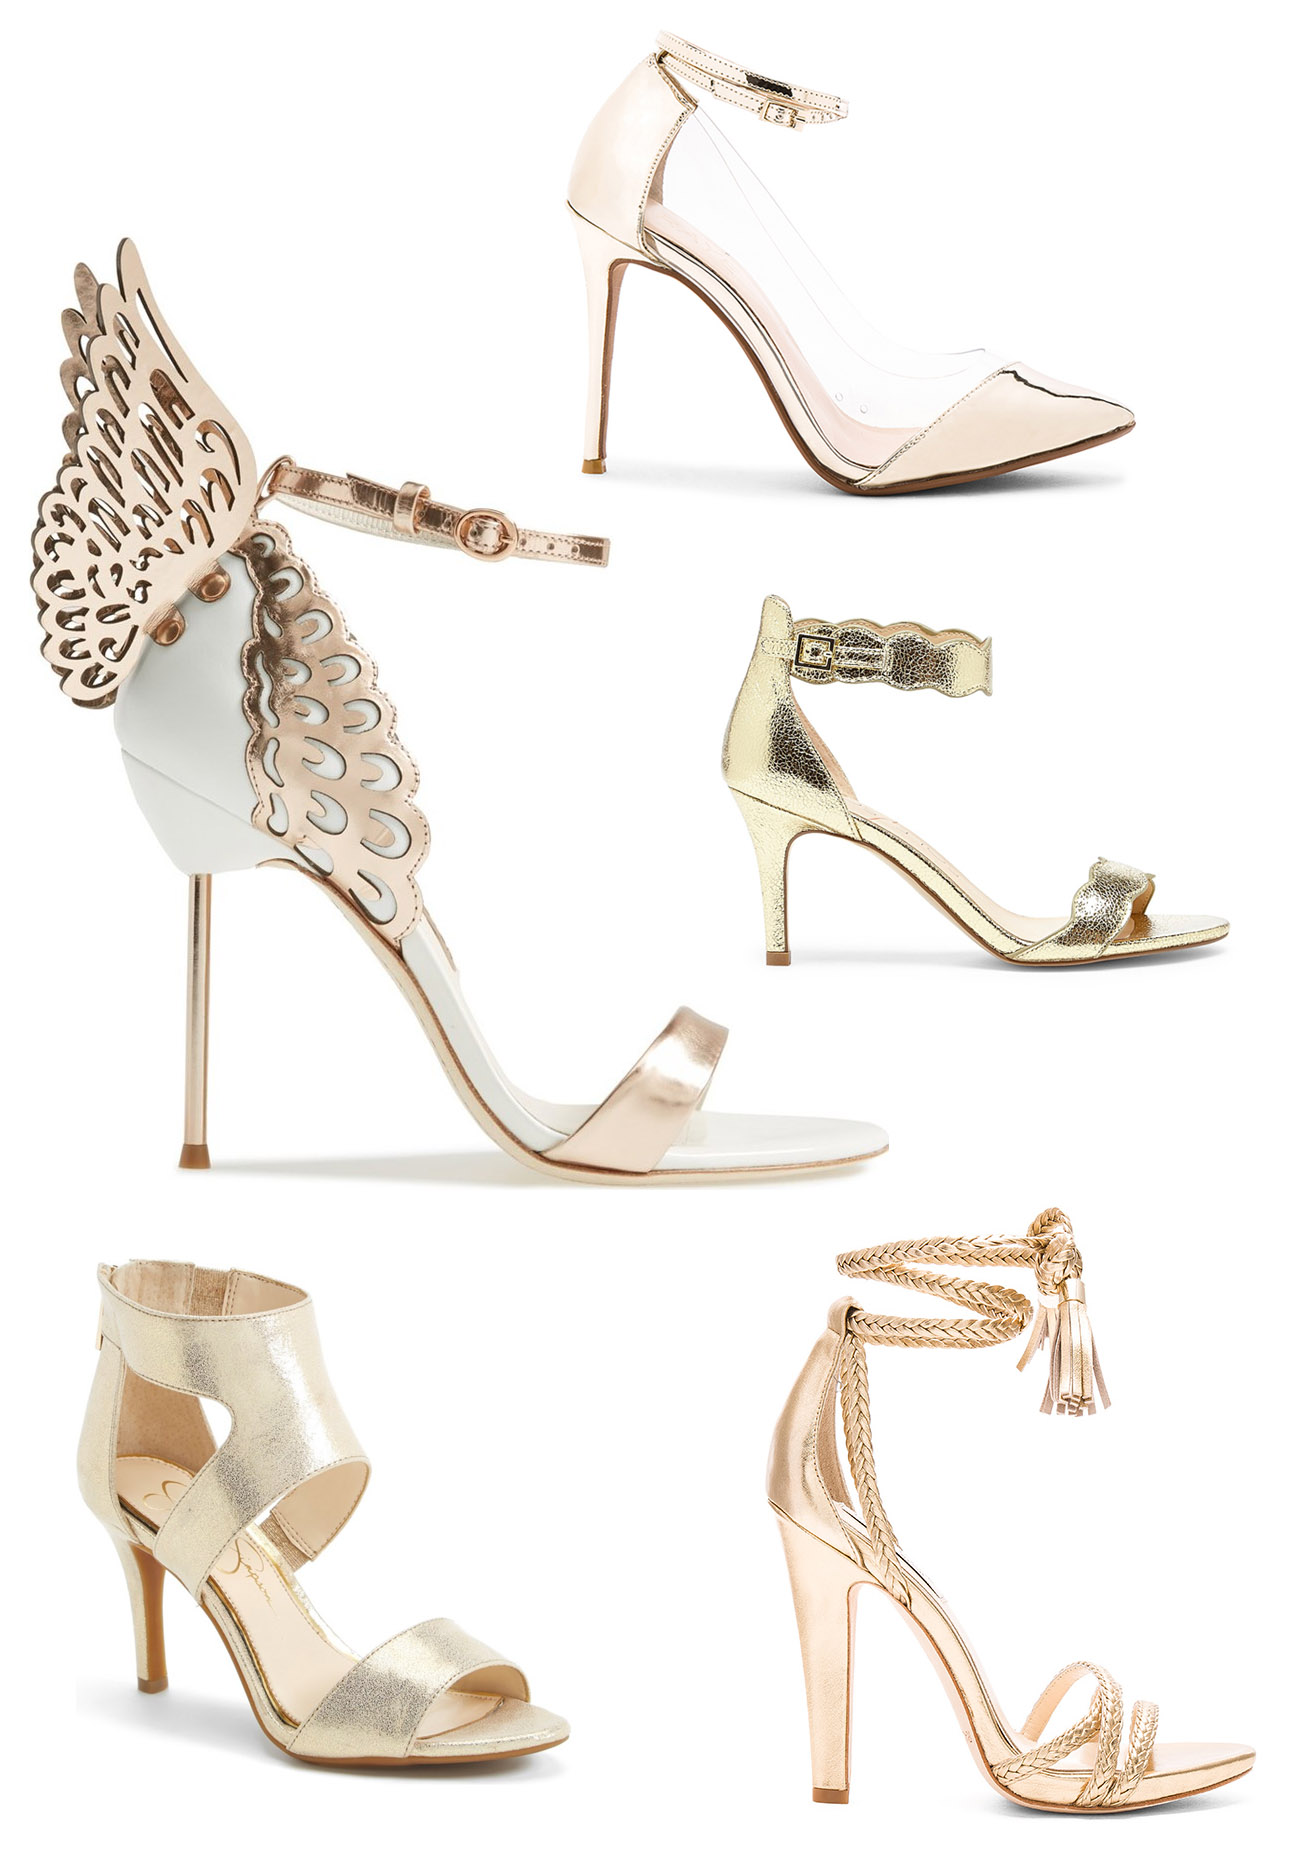 The Best Metallic Shoes